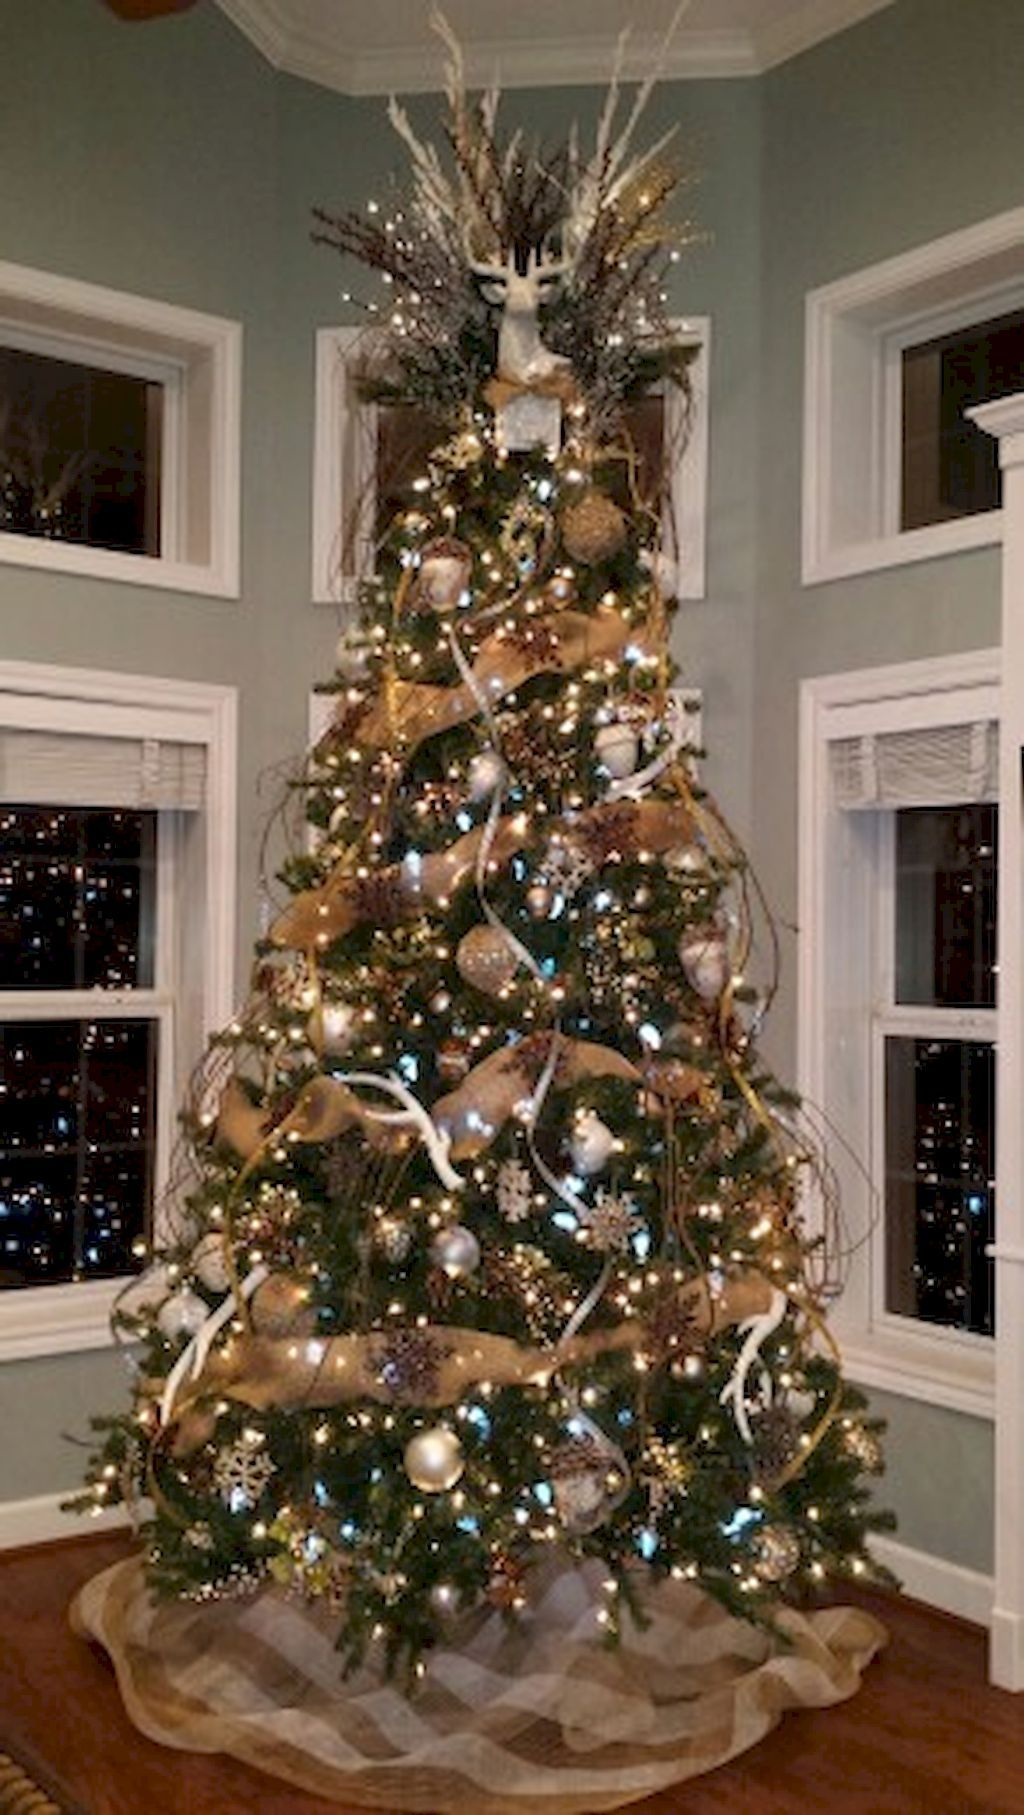 35 affordable rustic christmas tree decoration ideas | rustic